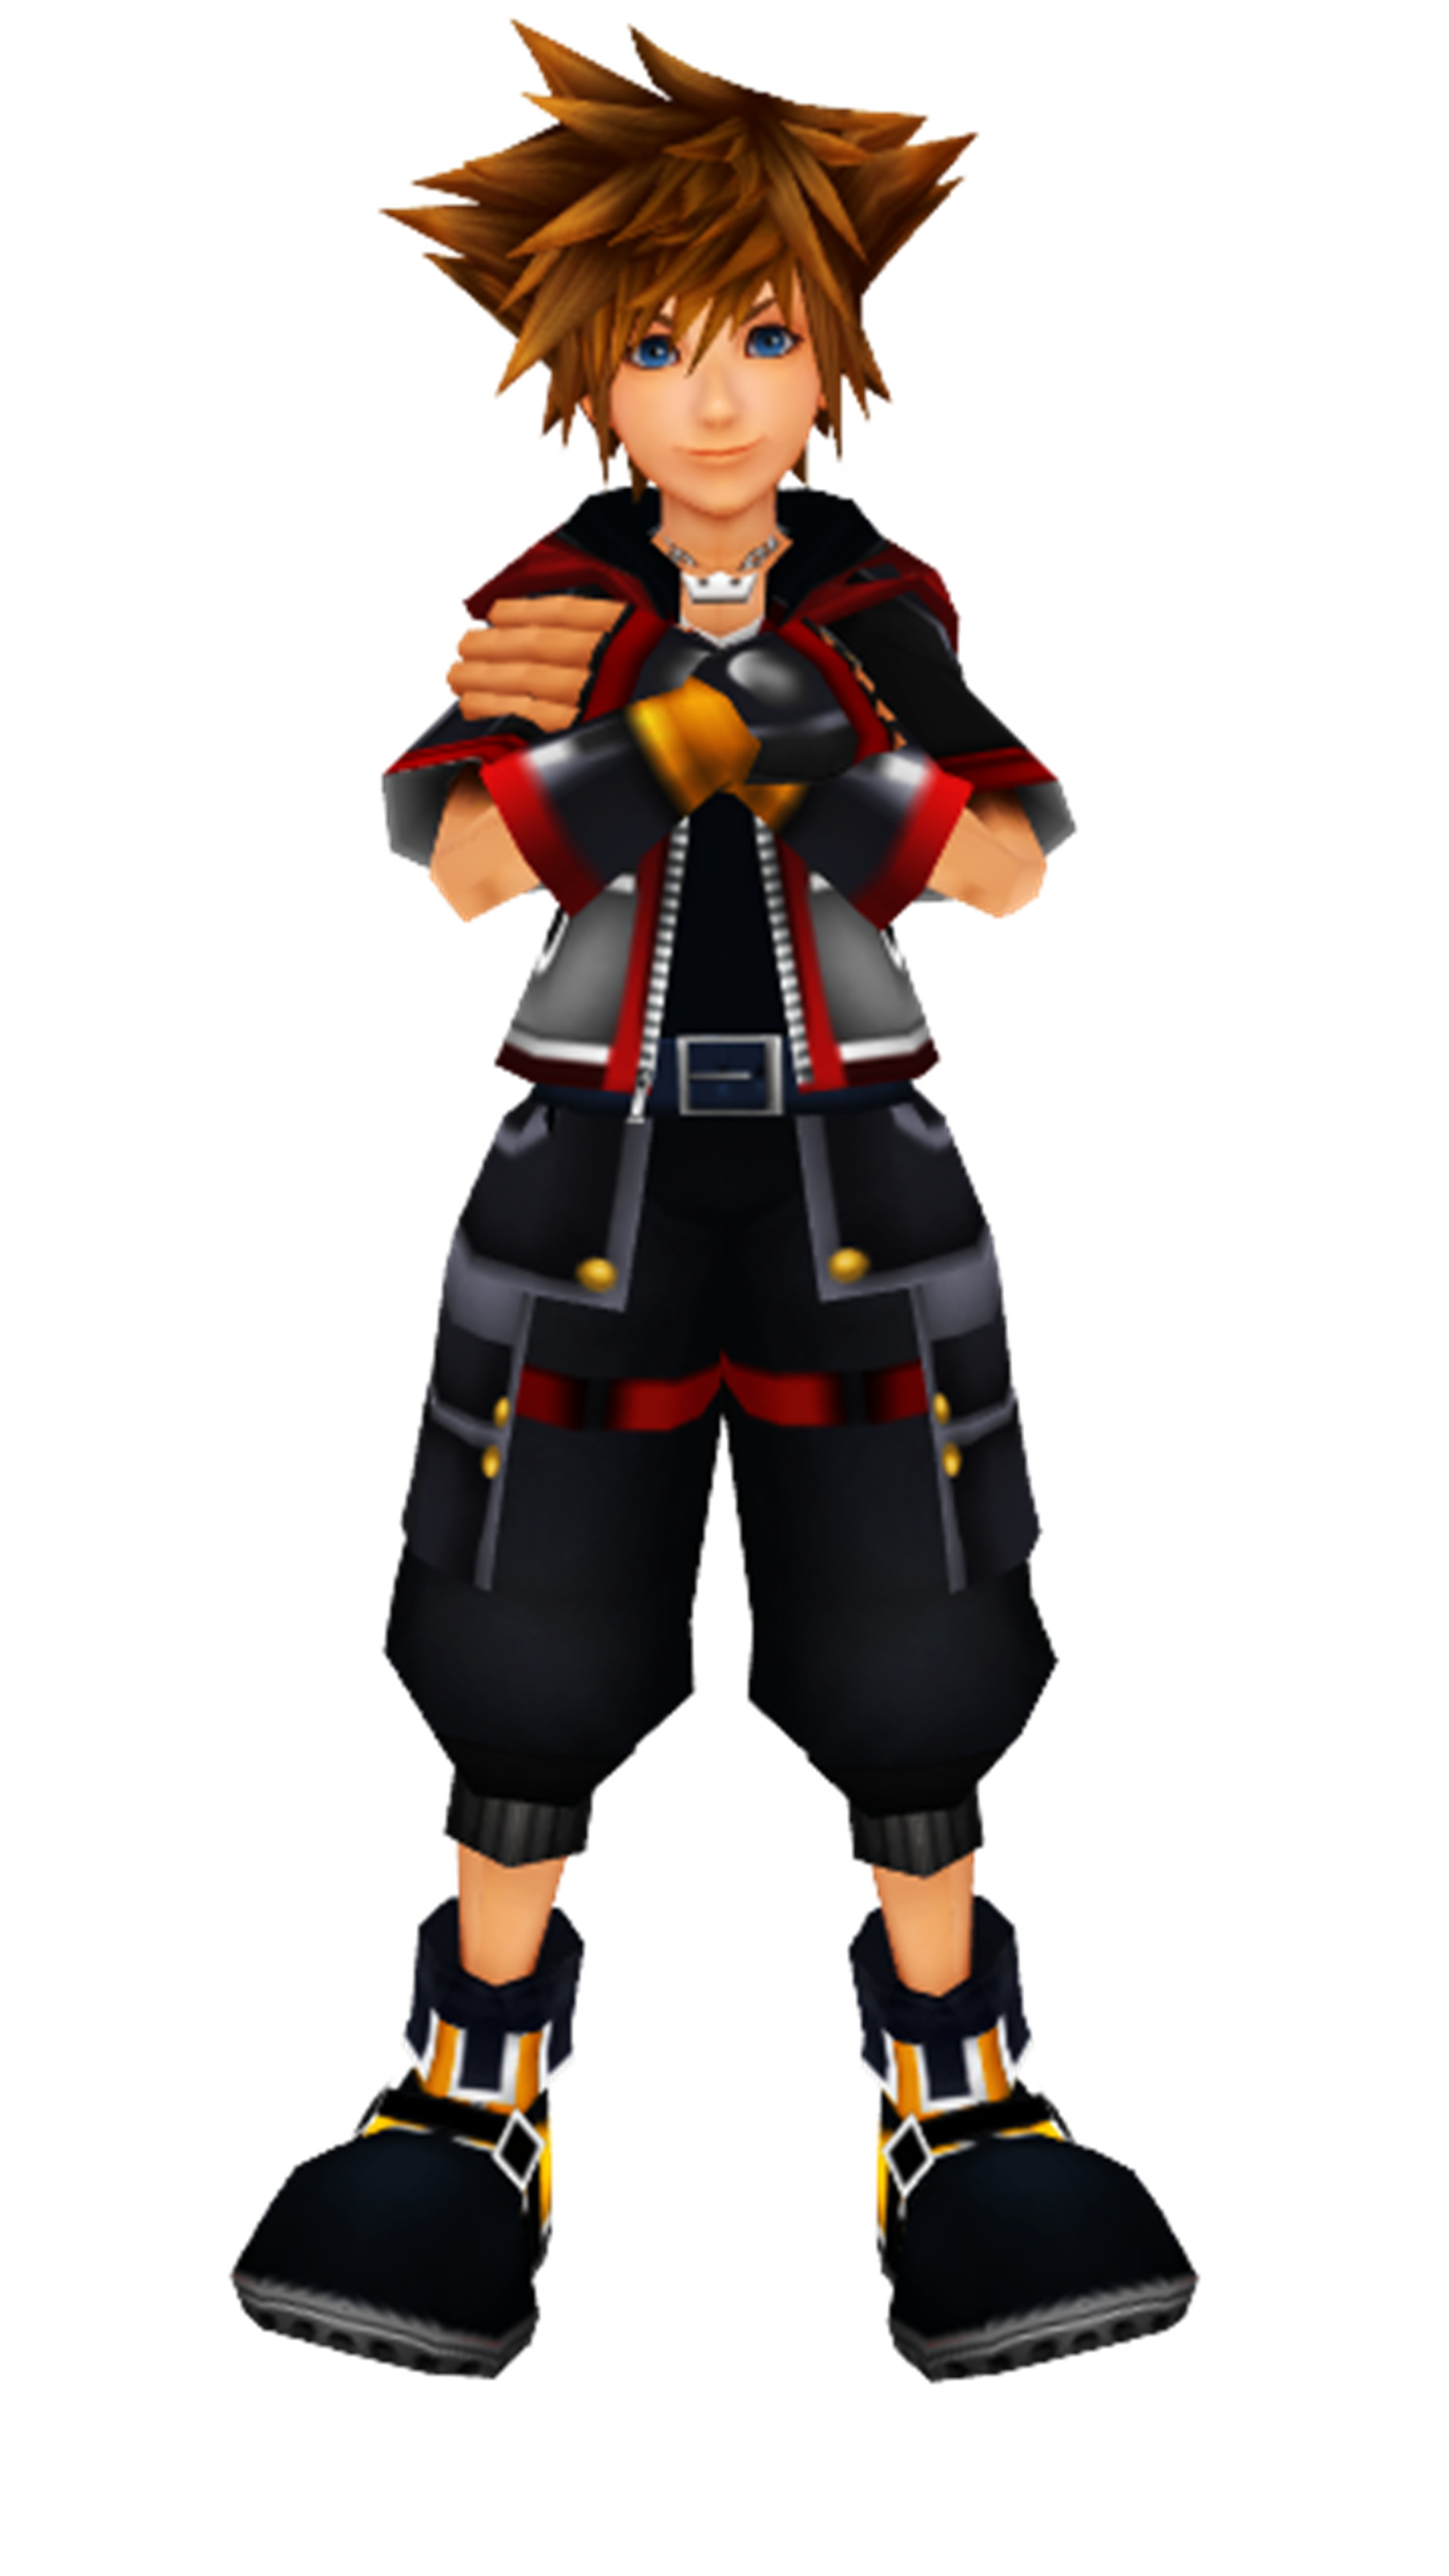 1825x3245 kingdom hearts 3 images Sora Kingdom Hearts III.. The Main Character. HD  wallpaper and background photos